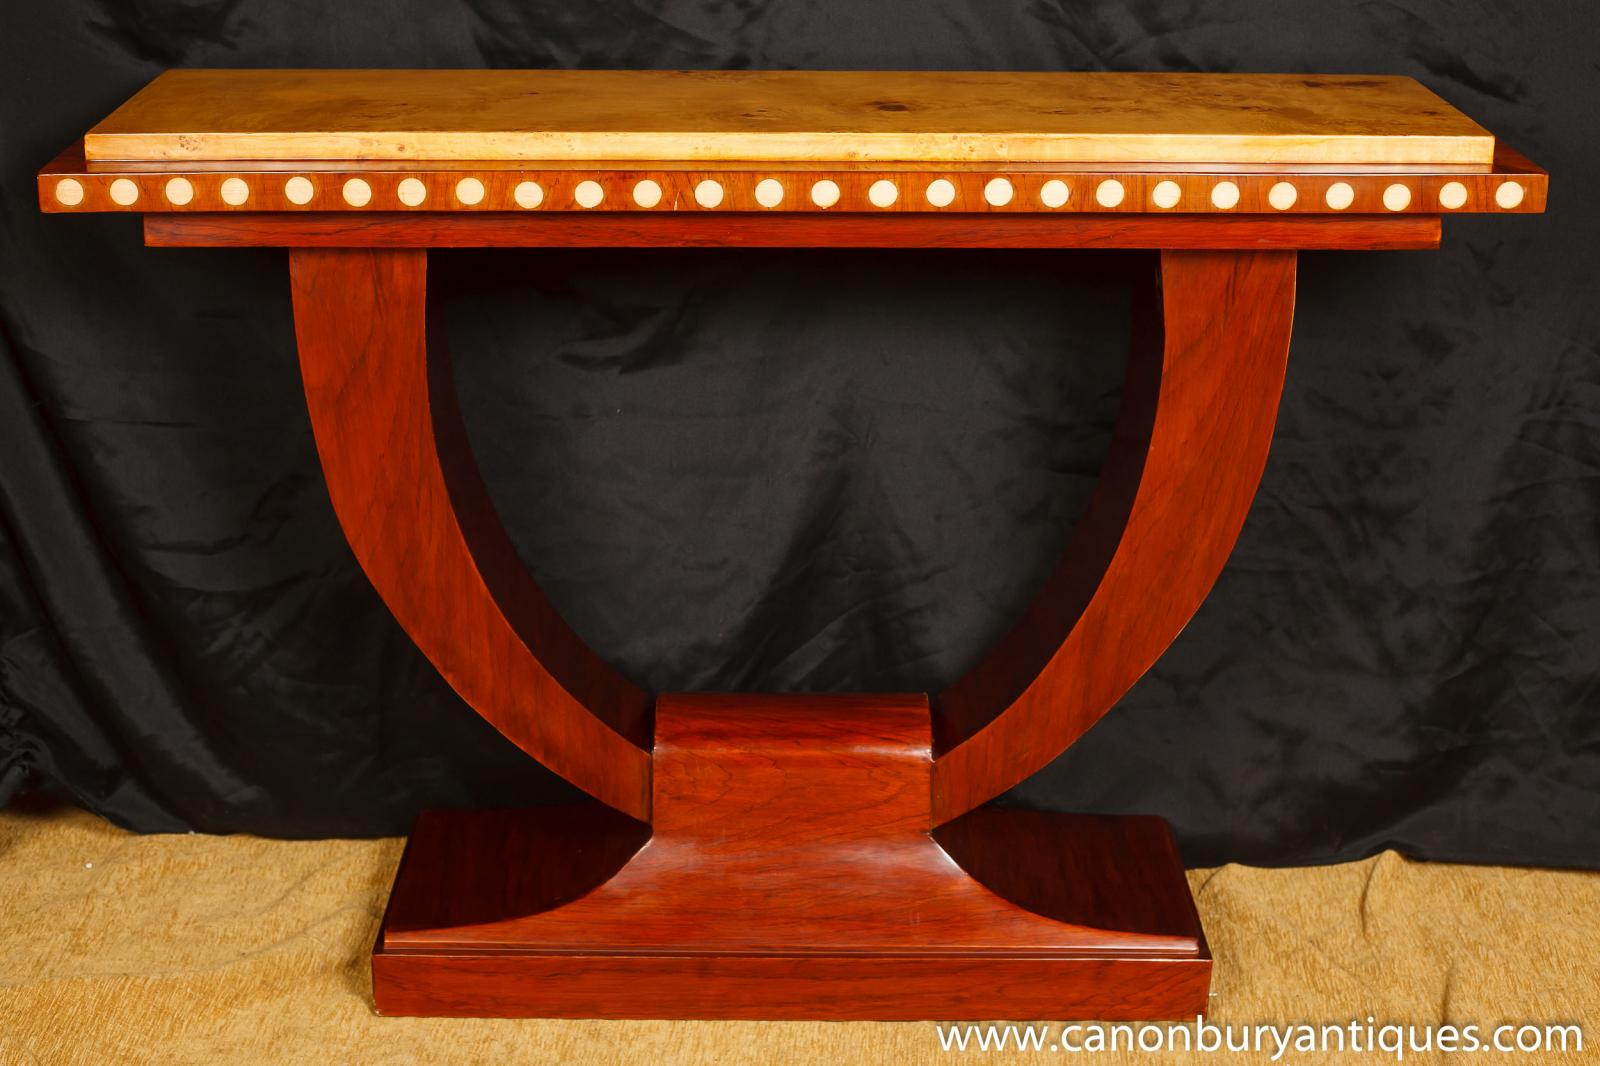 1920s art deco u console table hall tables interiors furniture ebay. Black Bedroom Furniture Sets. Home Design Ideas